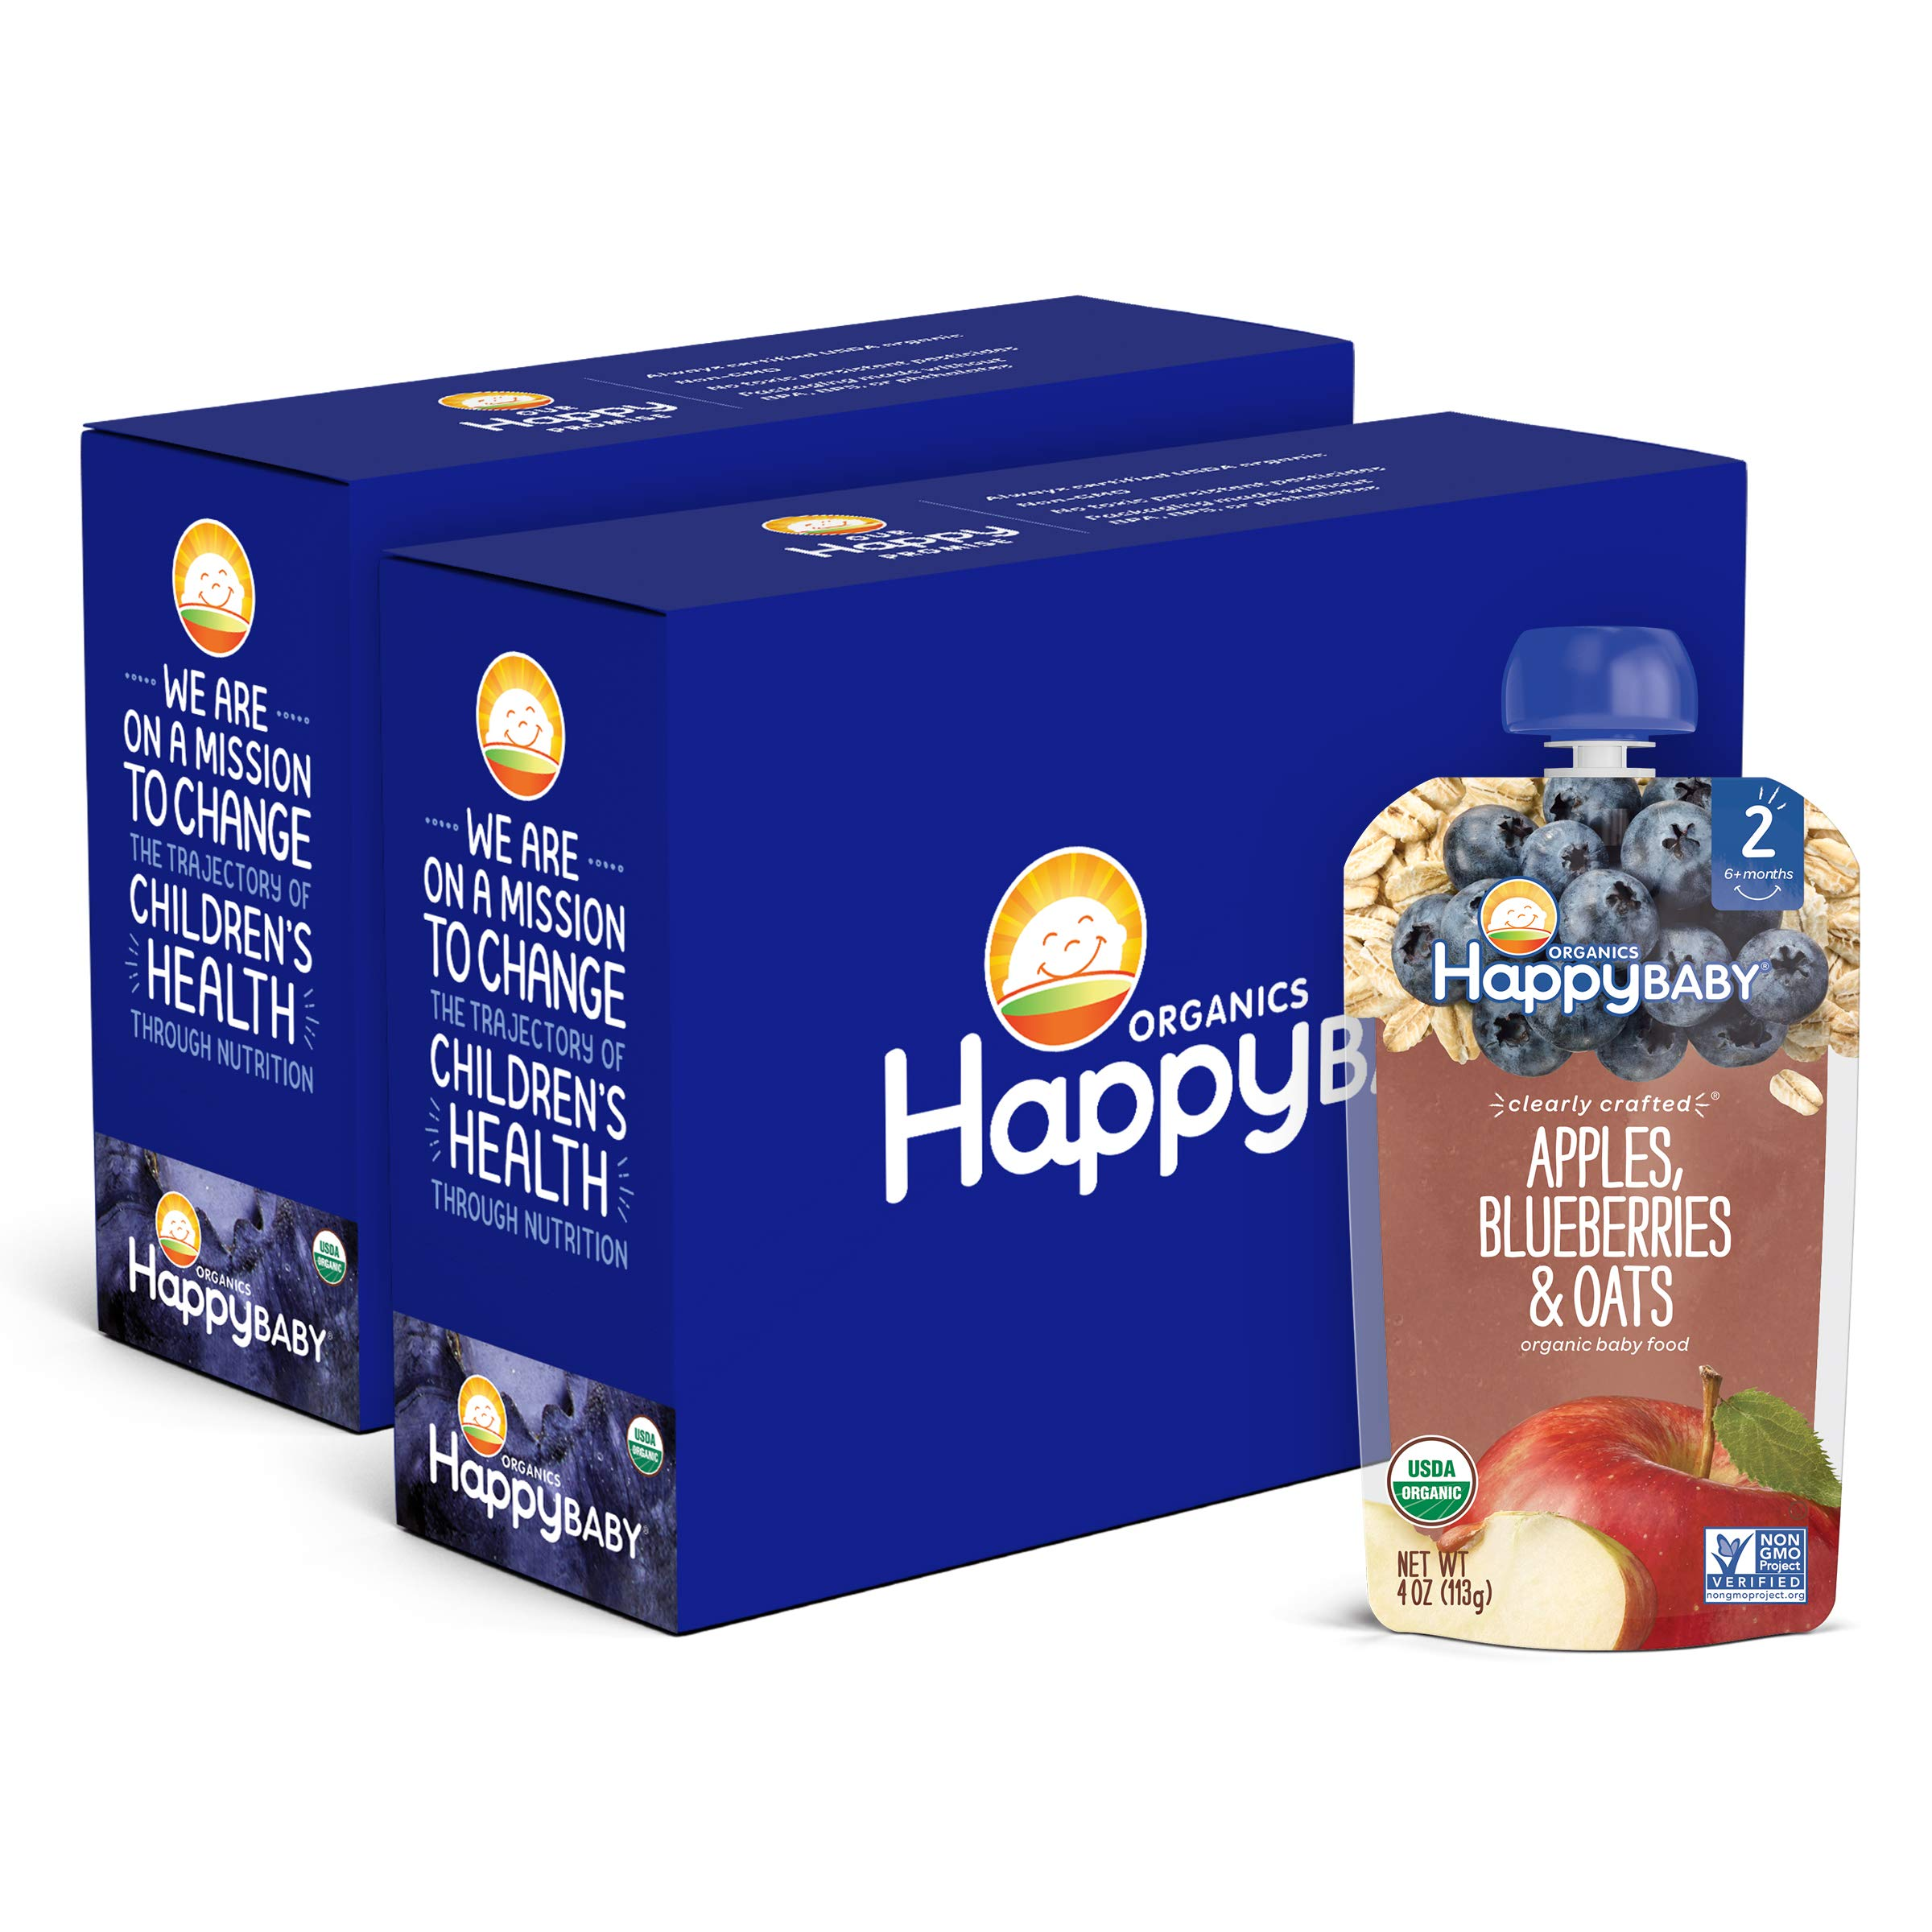 Happy Baby Organics Clearly Crafted Stage 2 Baby Food Apples, Blueberries & Oats, 4 Ounce Pouch (Pack of 16)